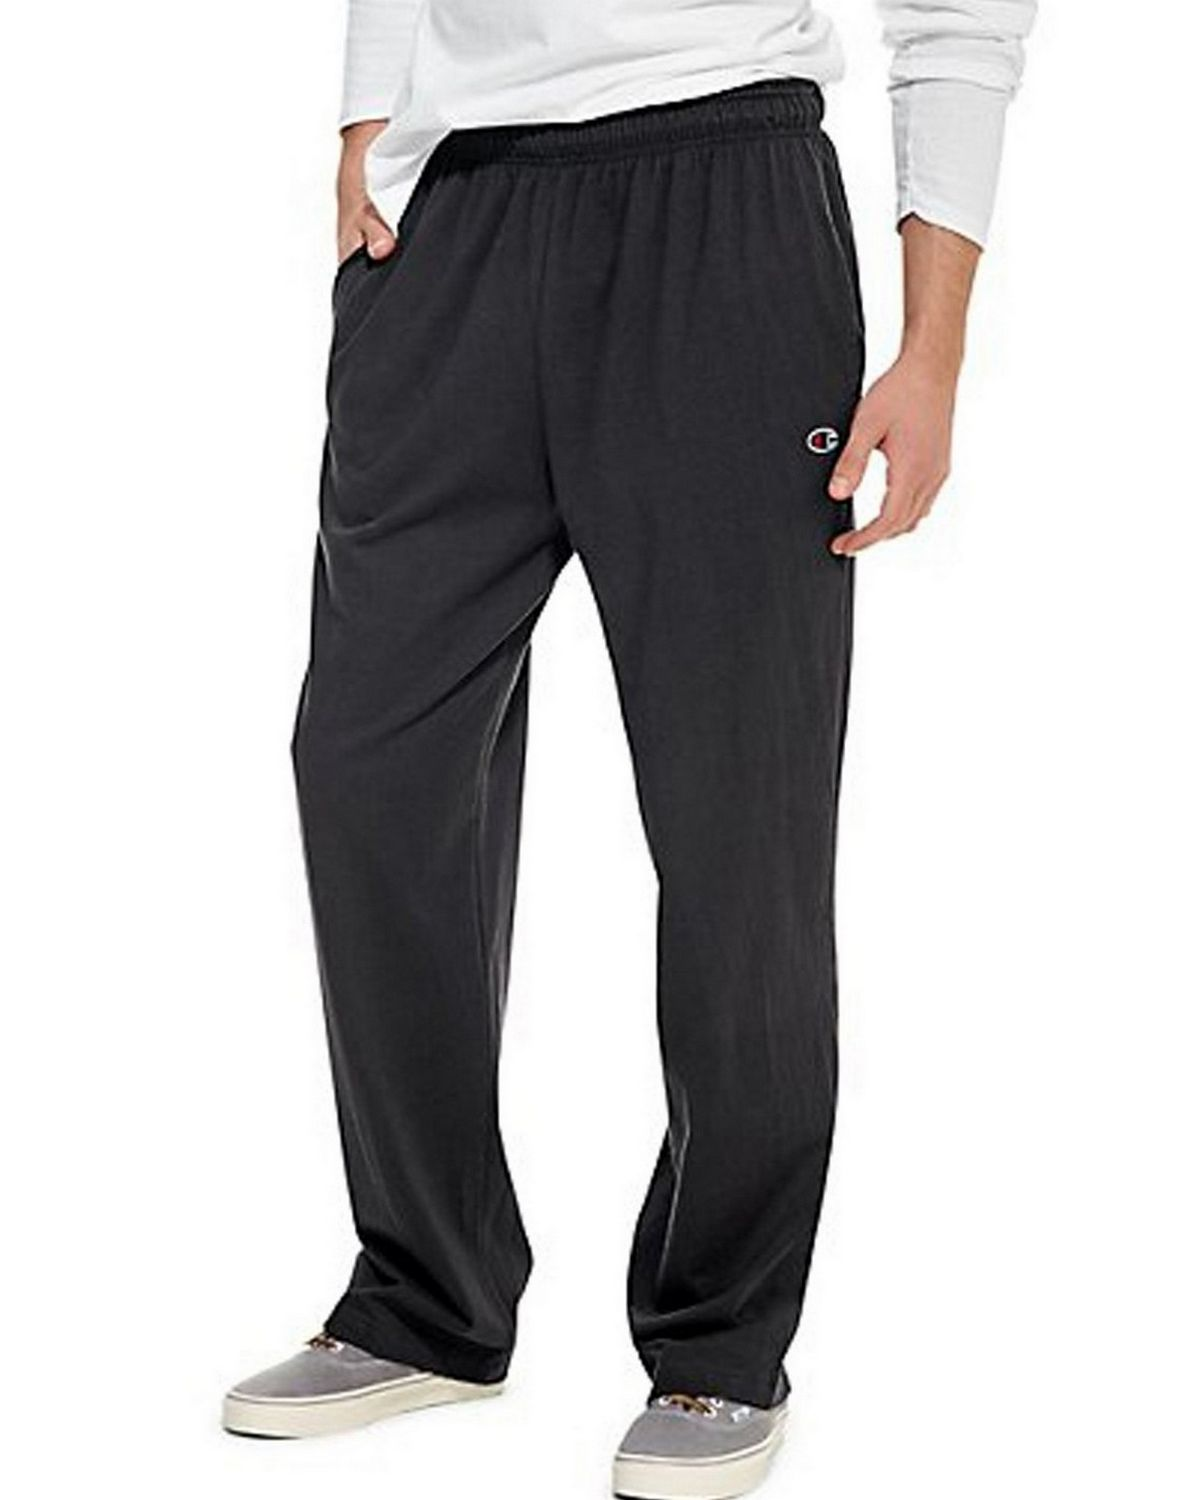 Champion P7309 Authentic Mens Open Bottom Jersey Pants - Oxford Grey - S P7309